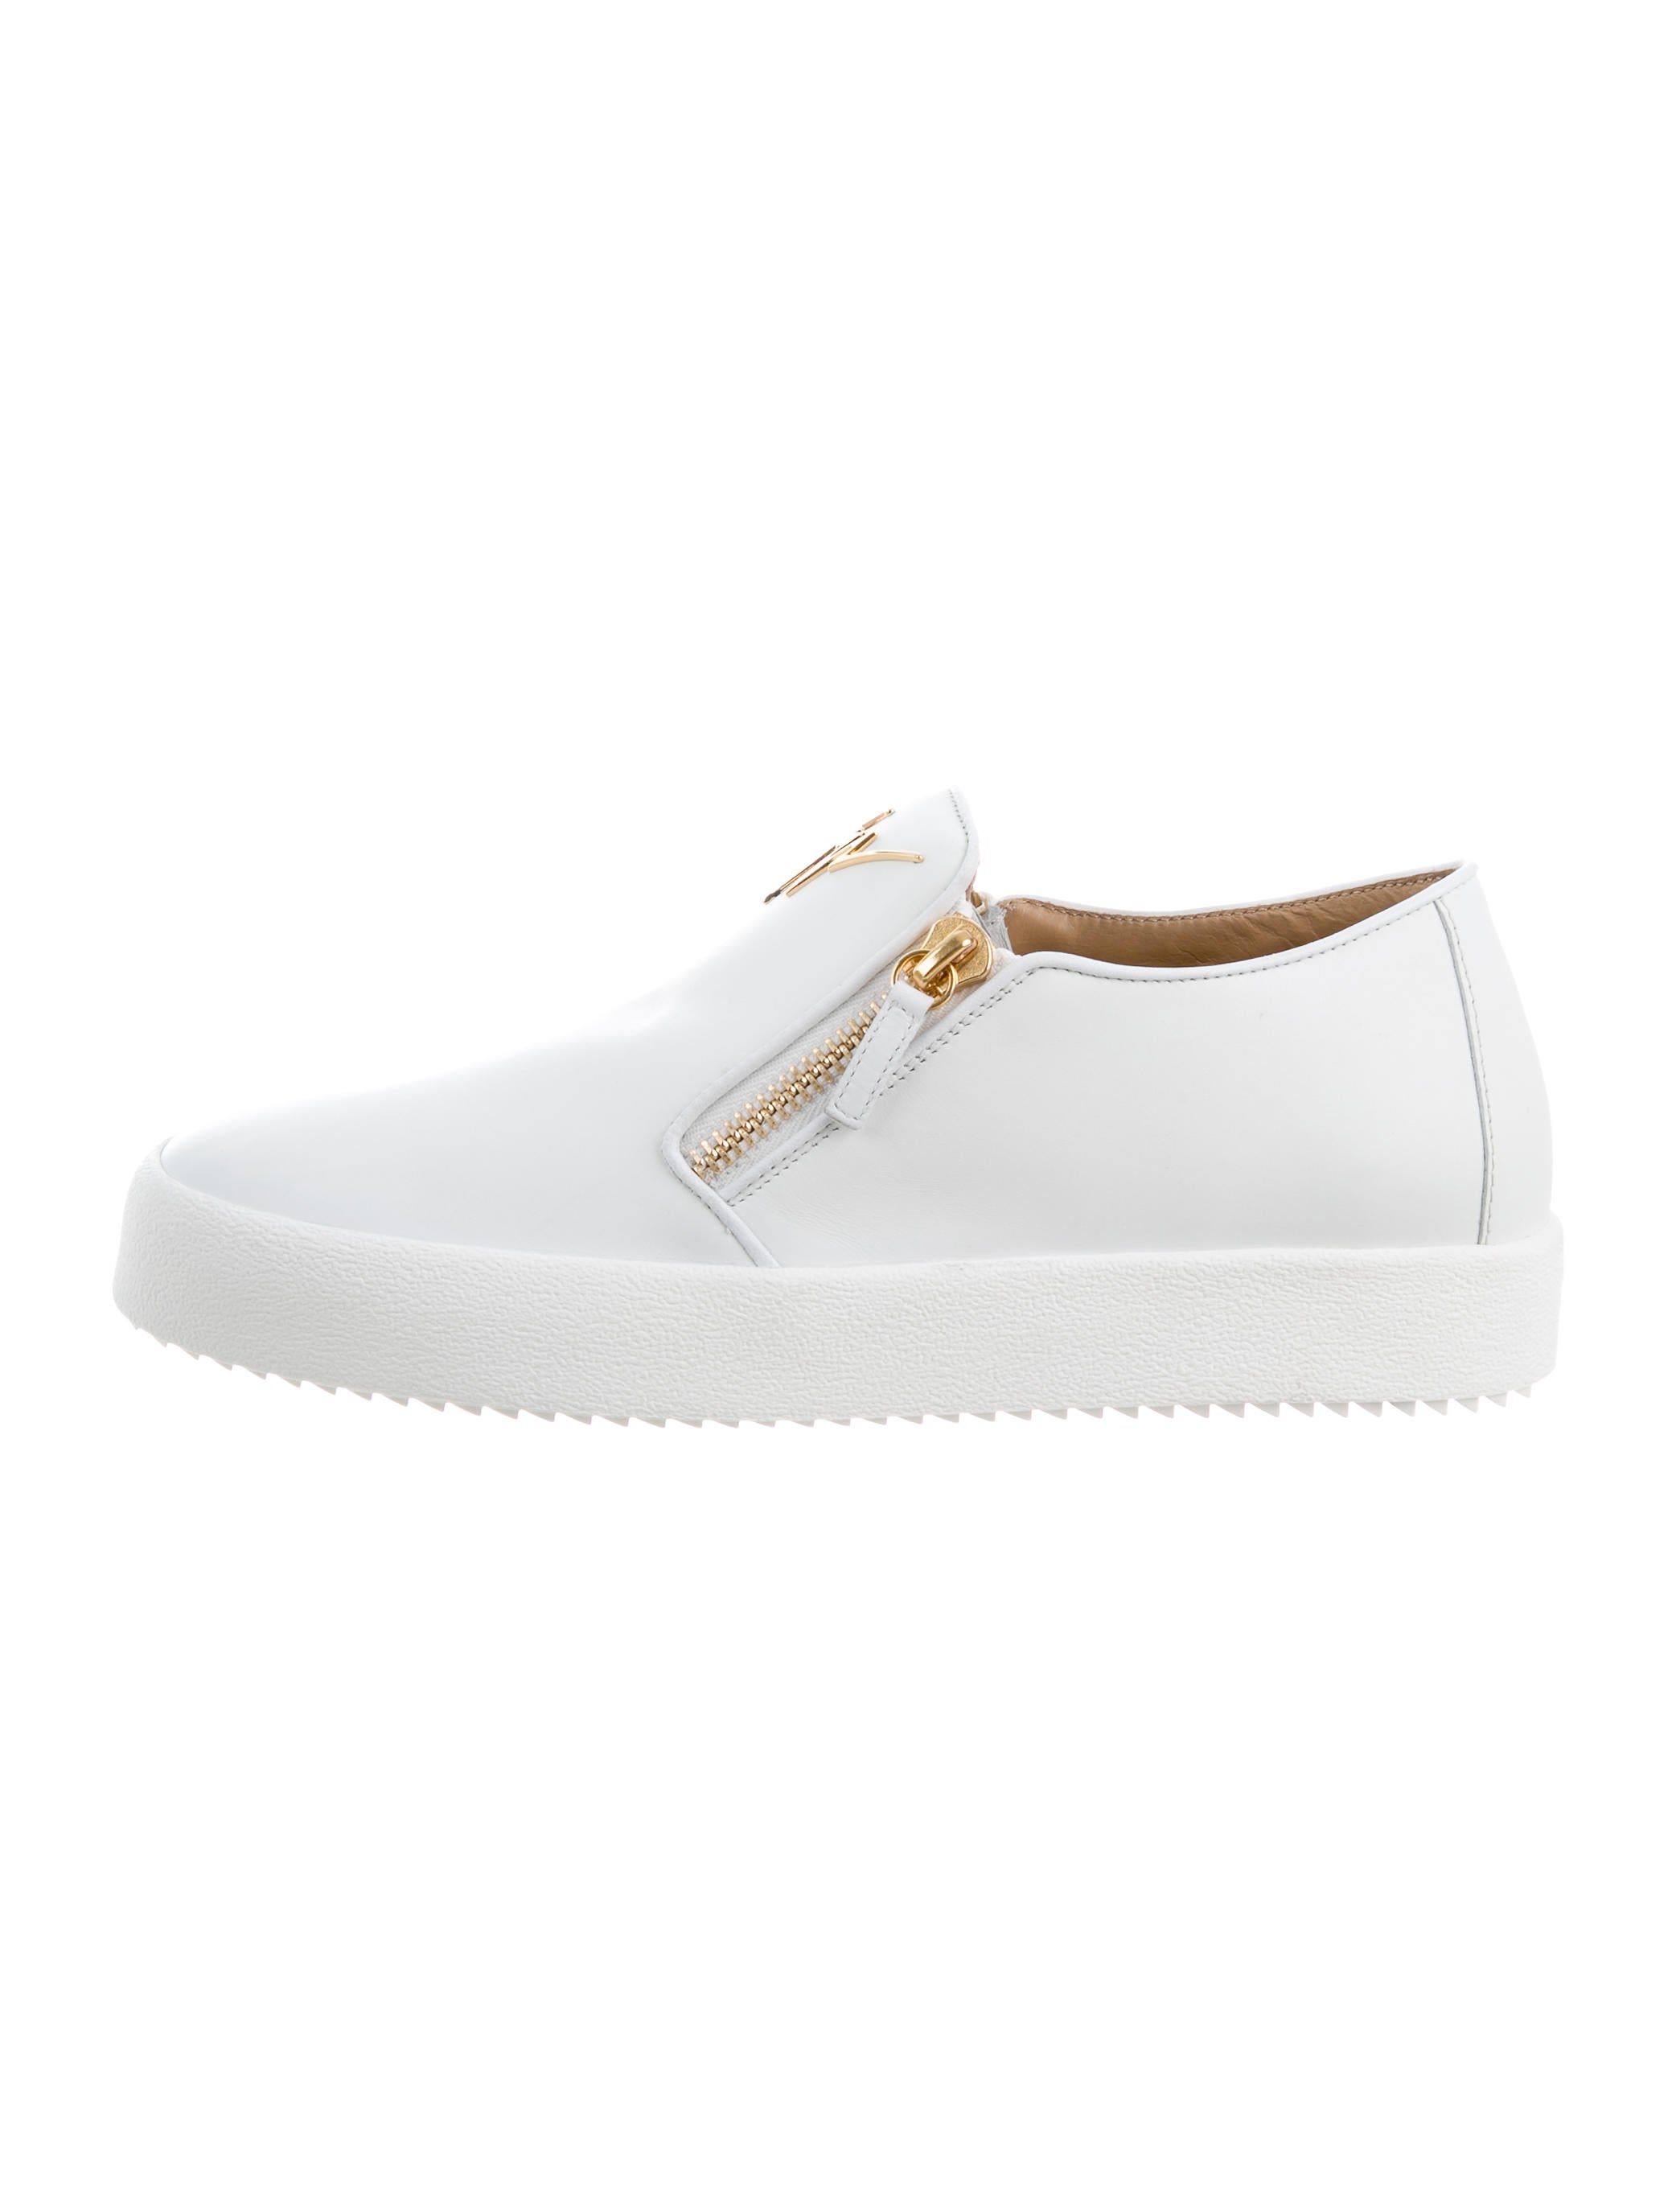 Giuseppe ZanottiMay London Slip-On Sneakers 46KlLG